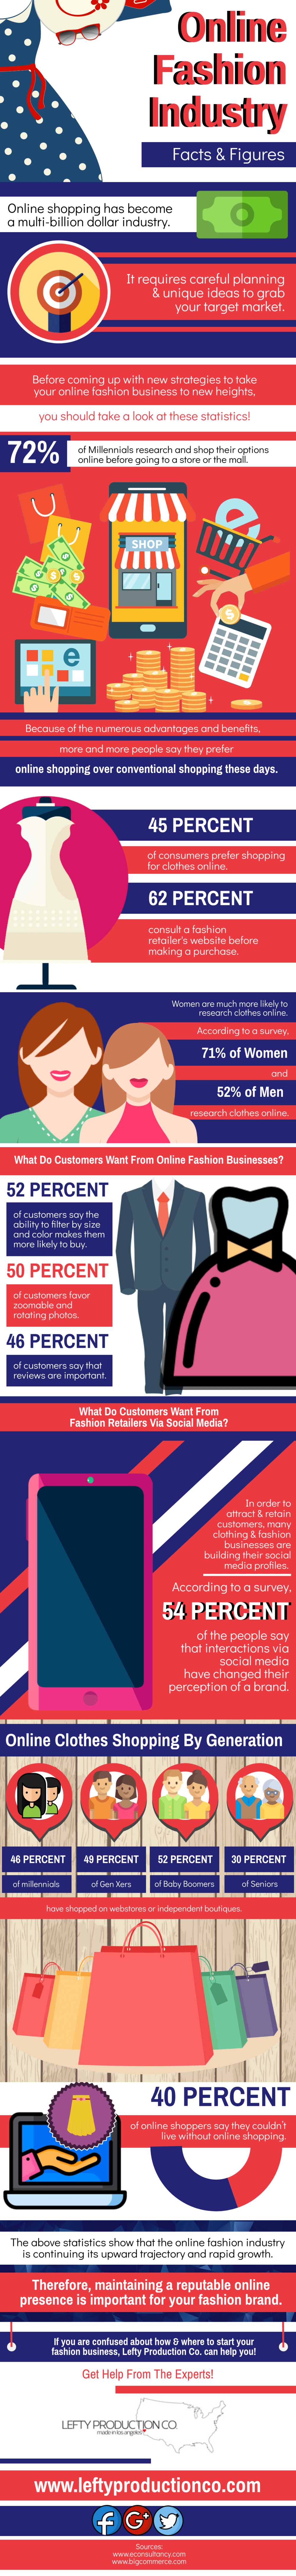 Online Fashion Industry Facts & Figures